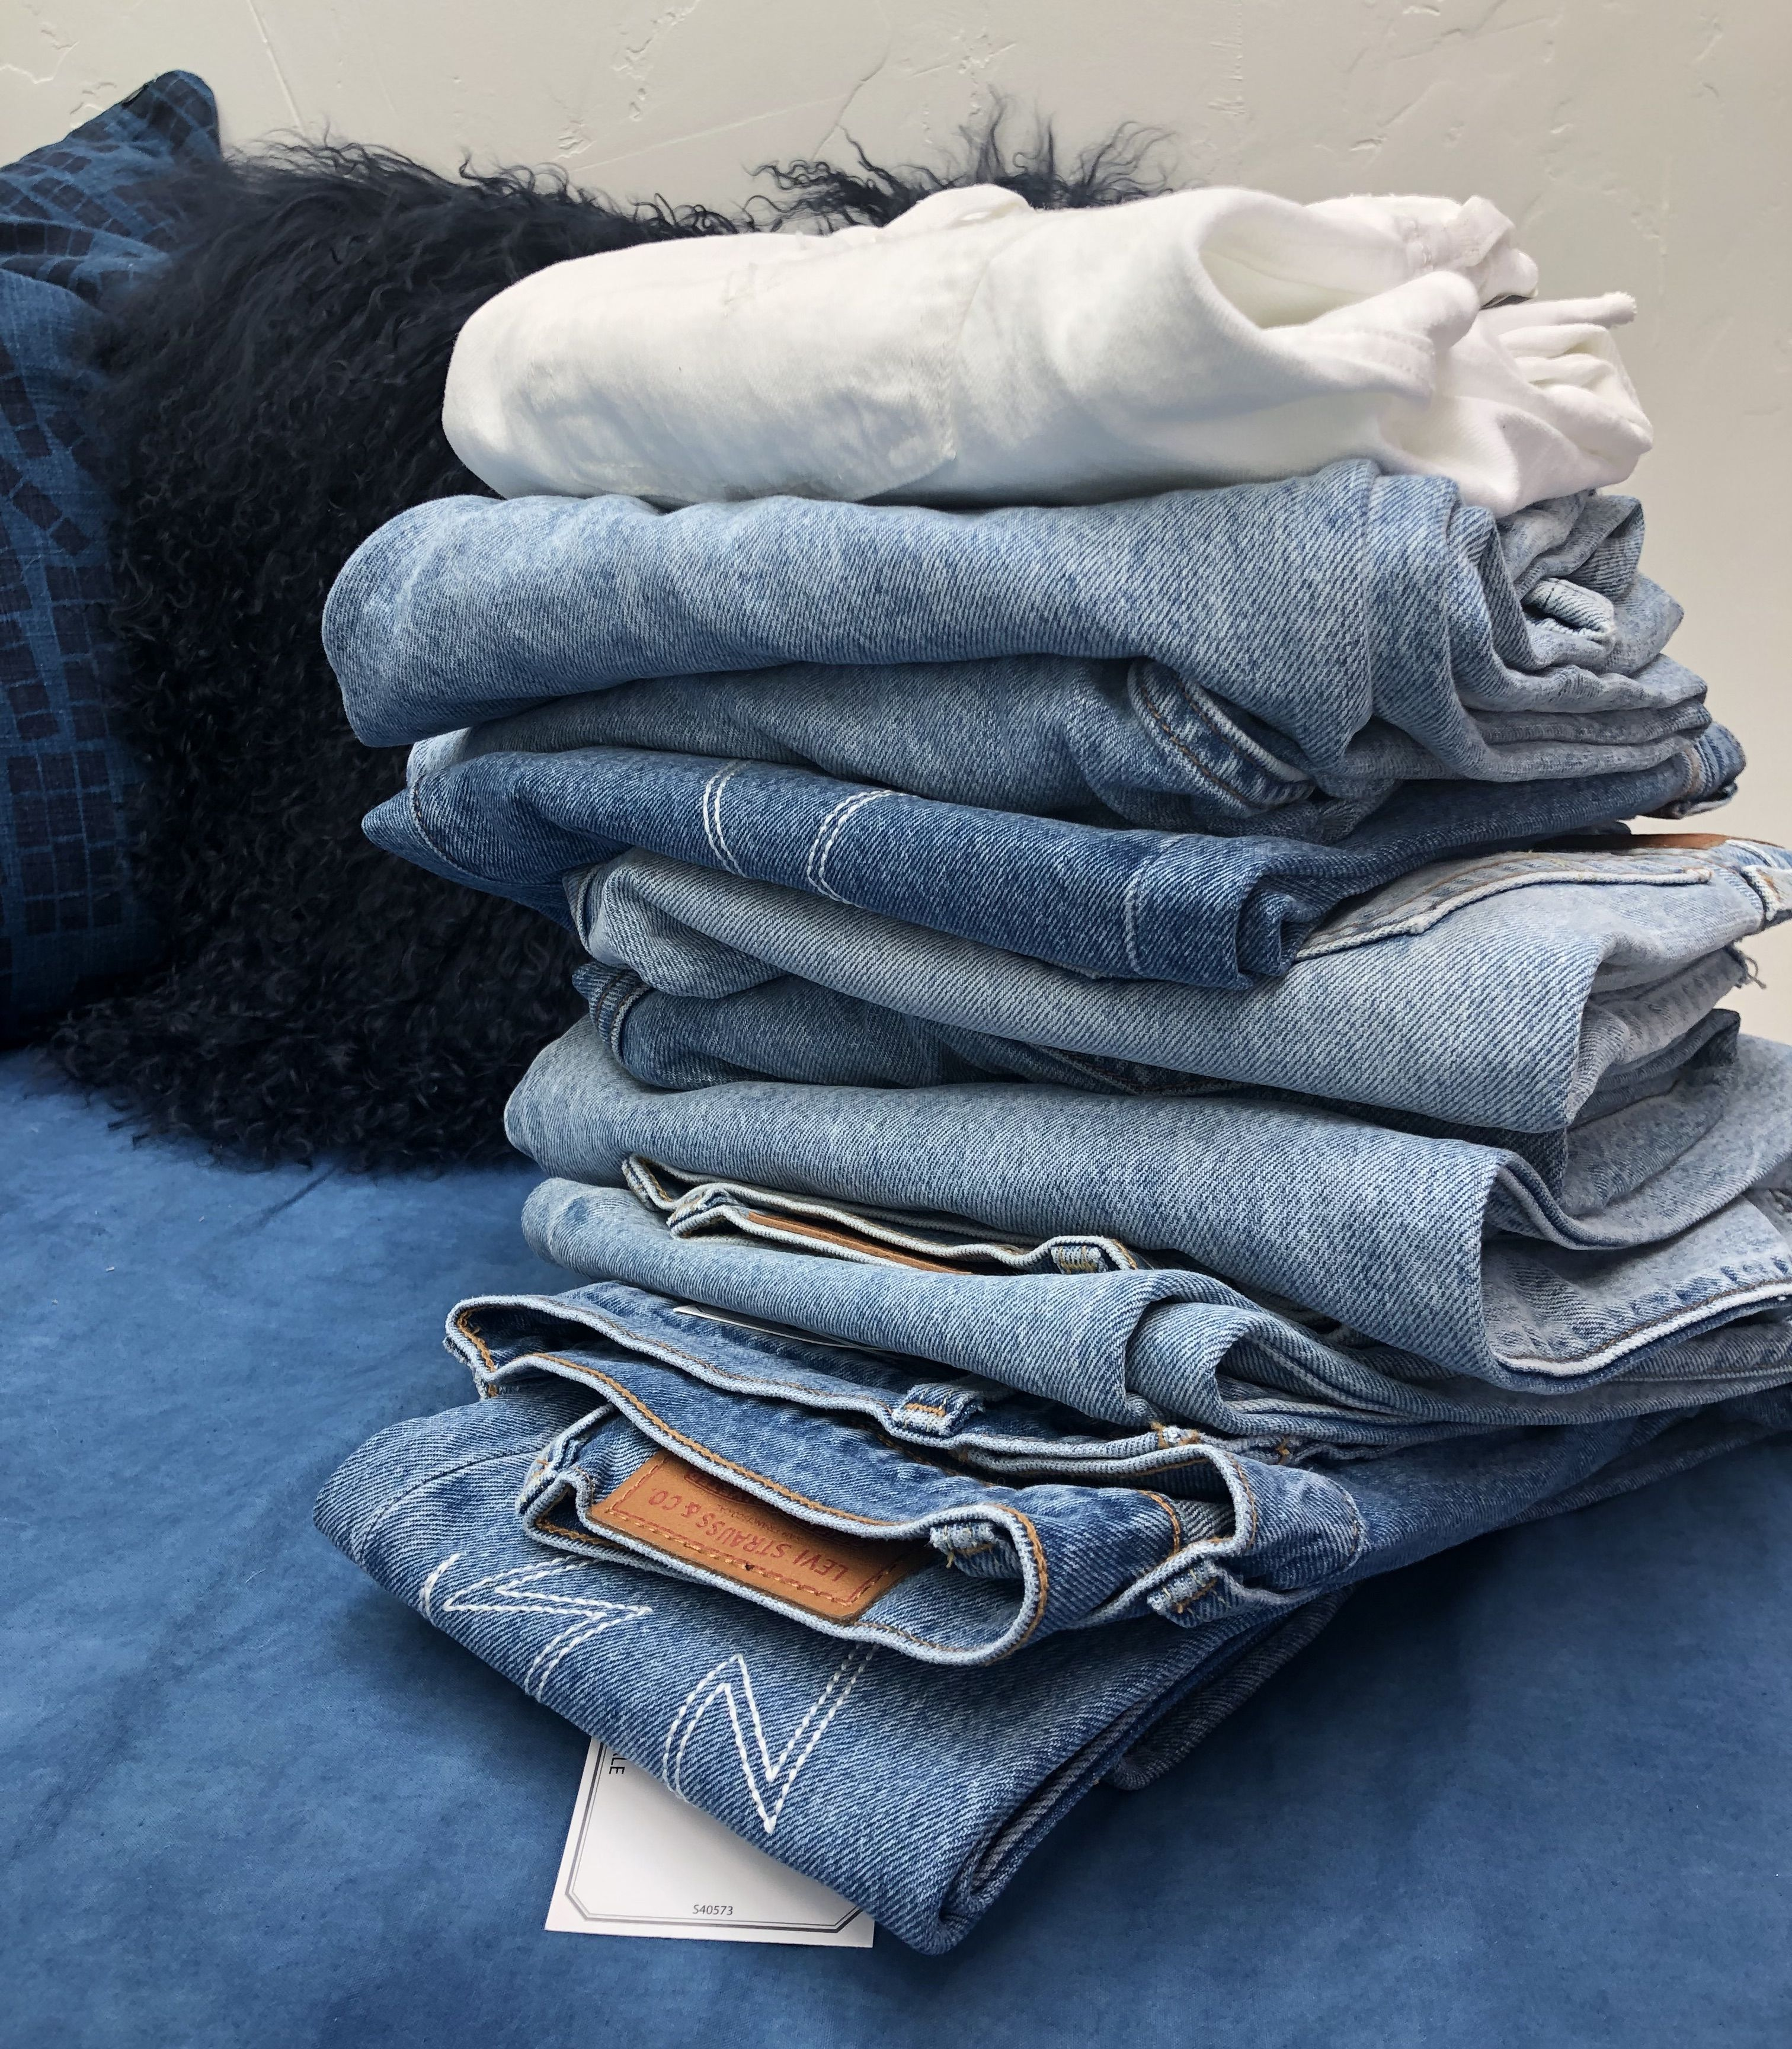 7bcc6cf3549 How Each Levi's Jeans Fit Looks IRL, Plus Which Makes Your Butt Look the  Best